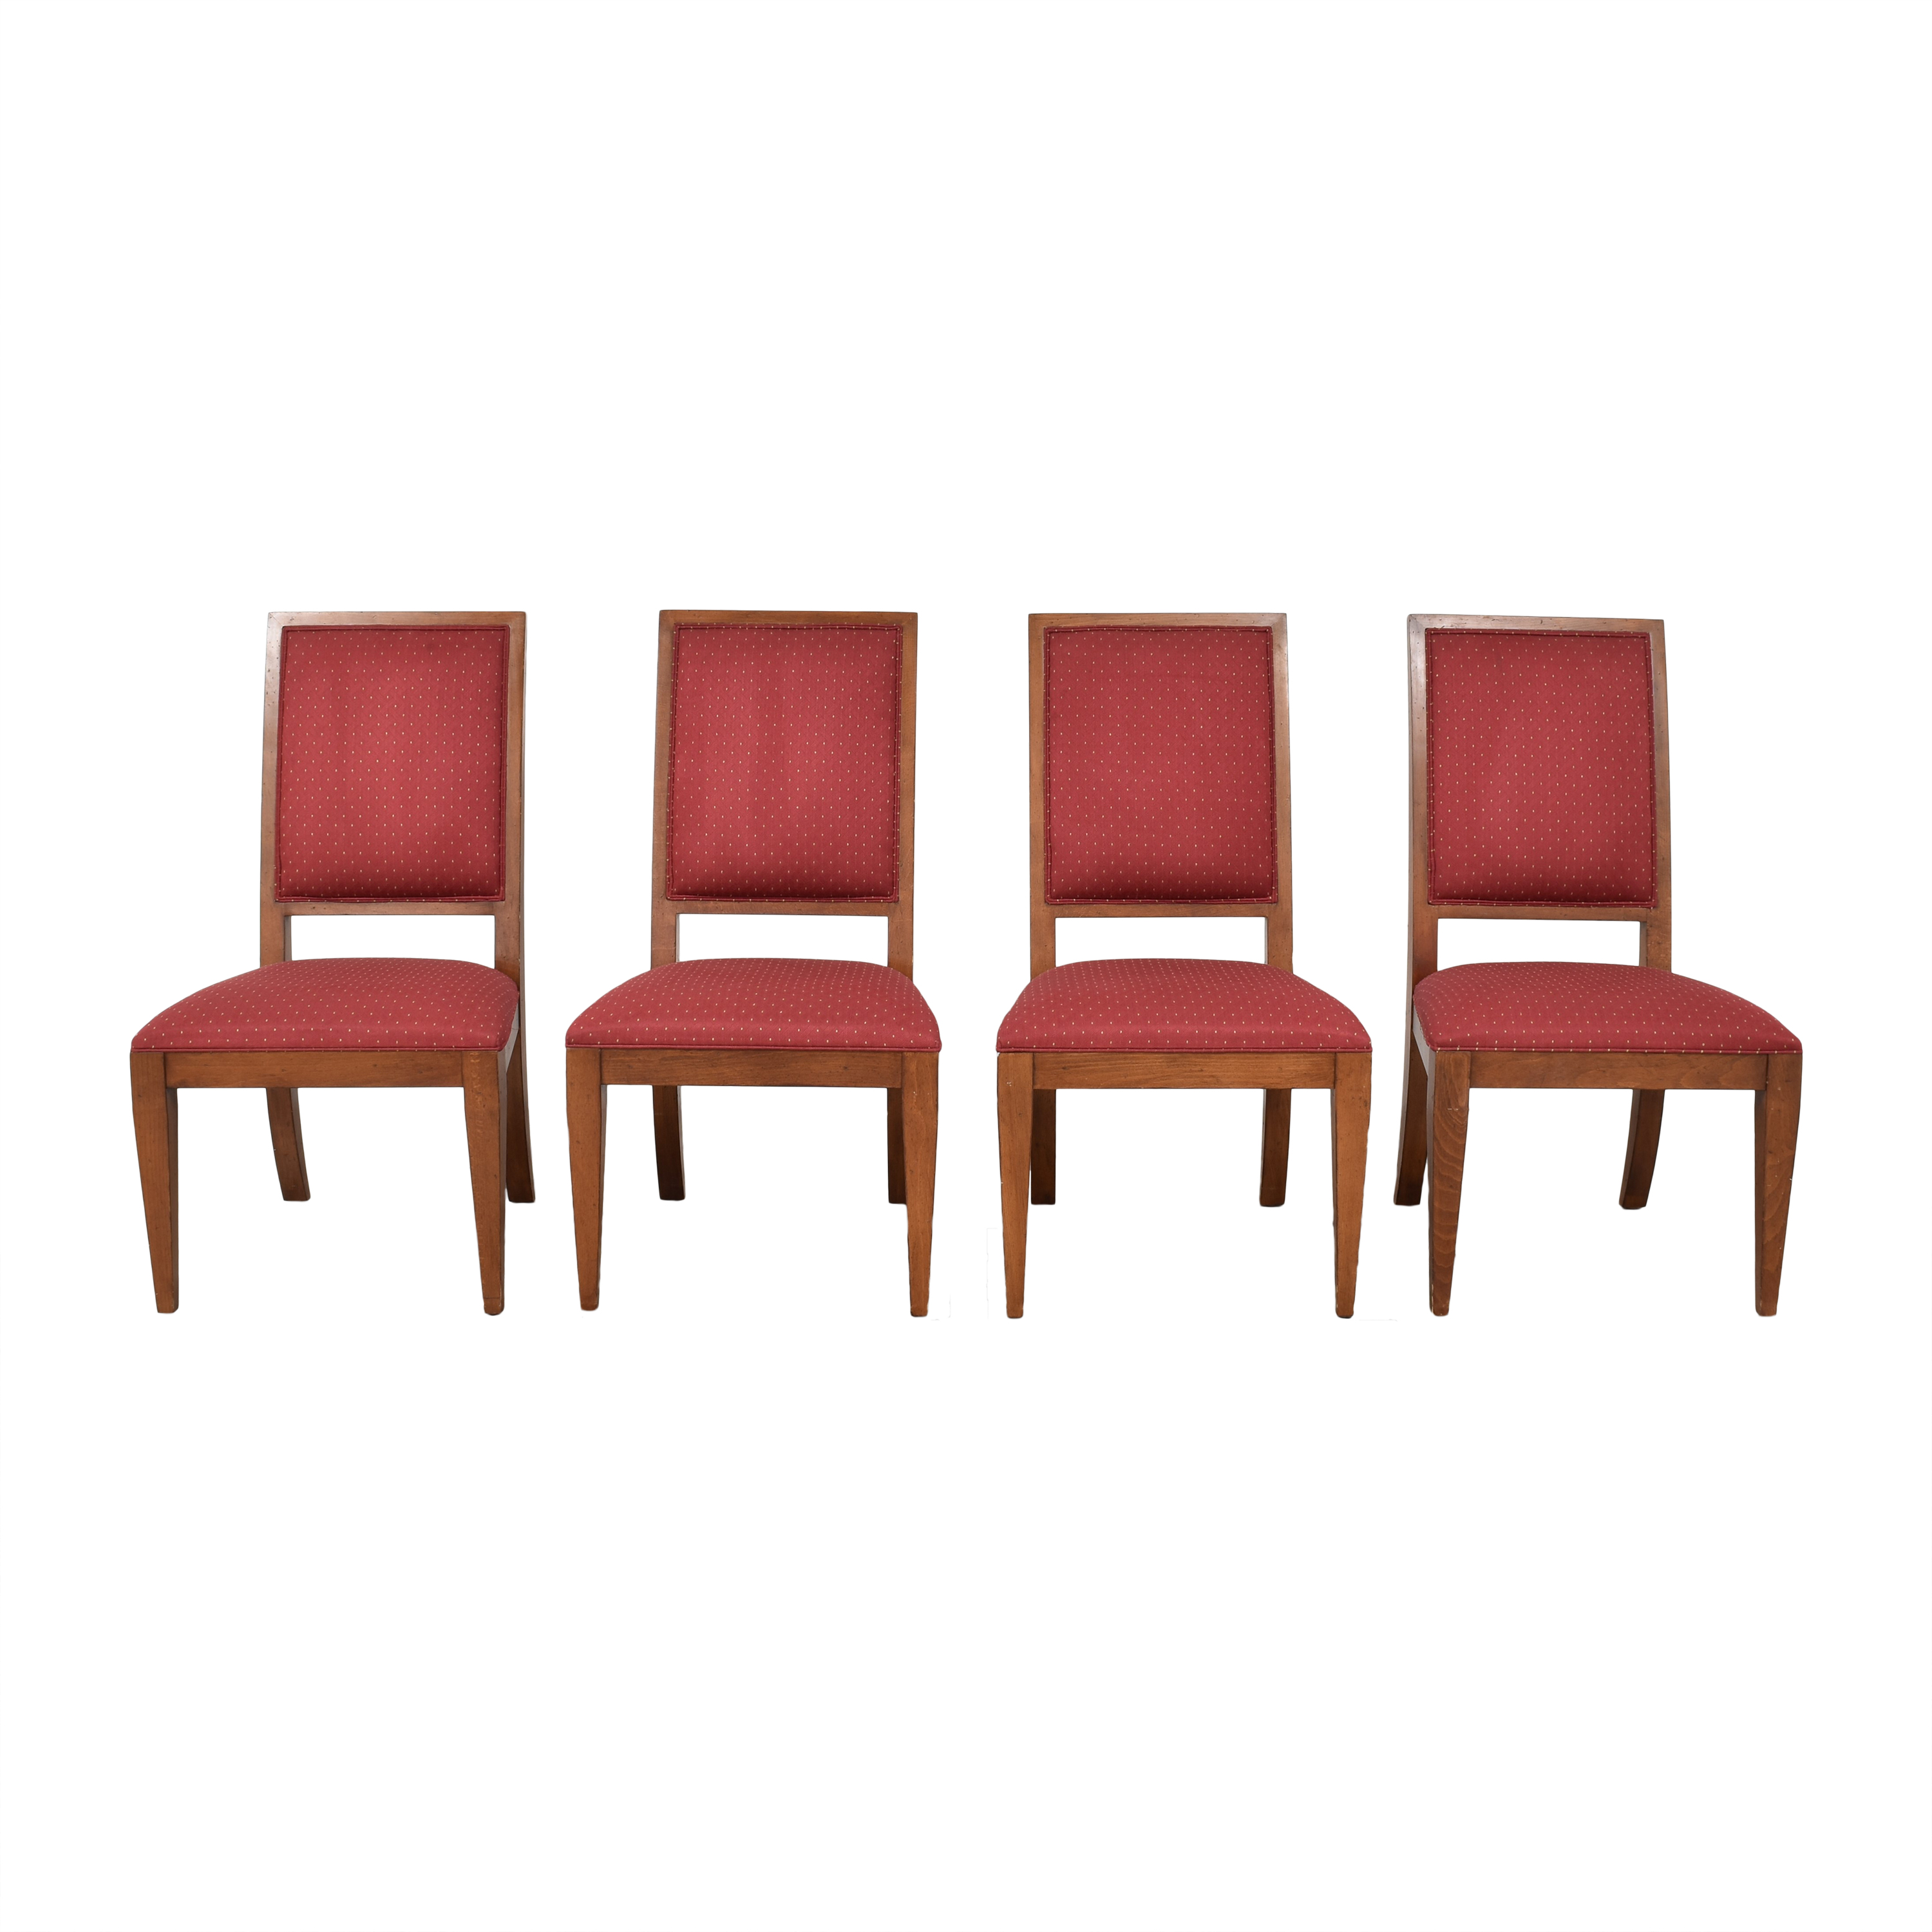 Ethan Allen Ethan Allen Upholstered Dining Chairs pa